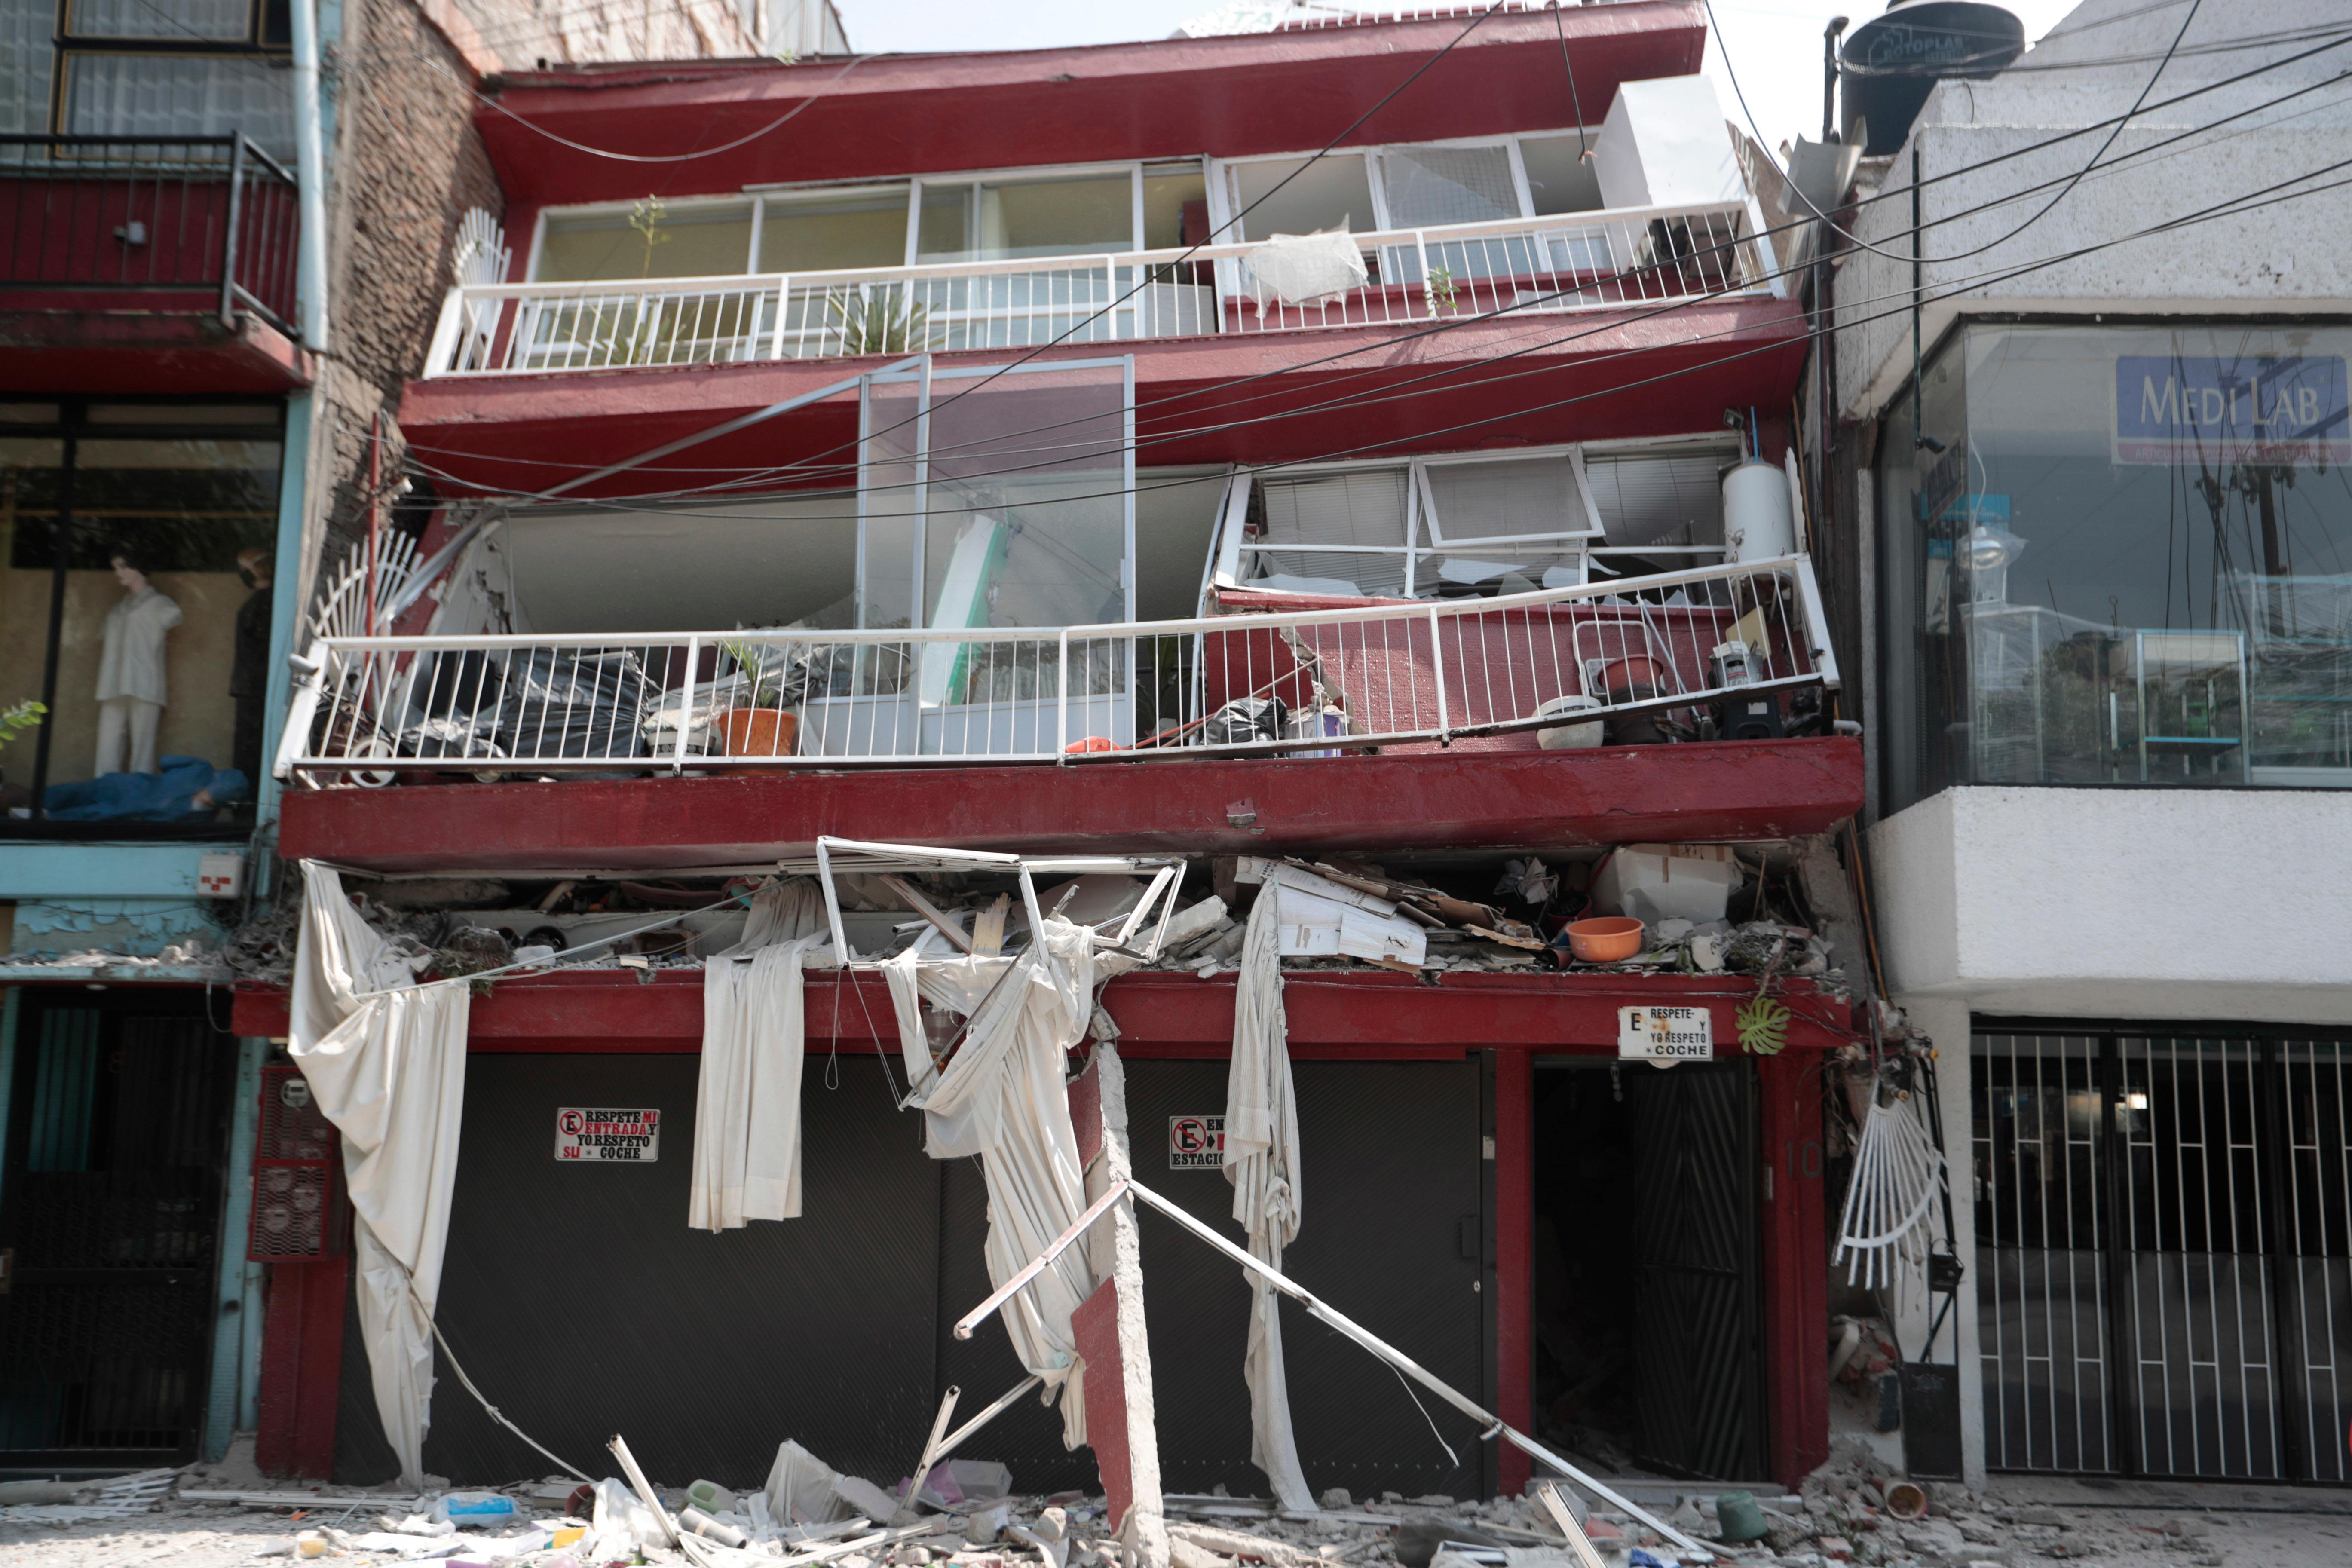 A heavily damaged building stands after an earthquake in the Narvarte neighborhood of Mexico City, Tuesday, Sept. 19, 2017. A magnitude 7.1 earthquake has rocked central Mexico, killing at least 55 people as buildings collapsed in plumes of dust and thousands fled into the streets in panic. (AP Photo/Eduardo Verdugo)